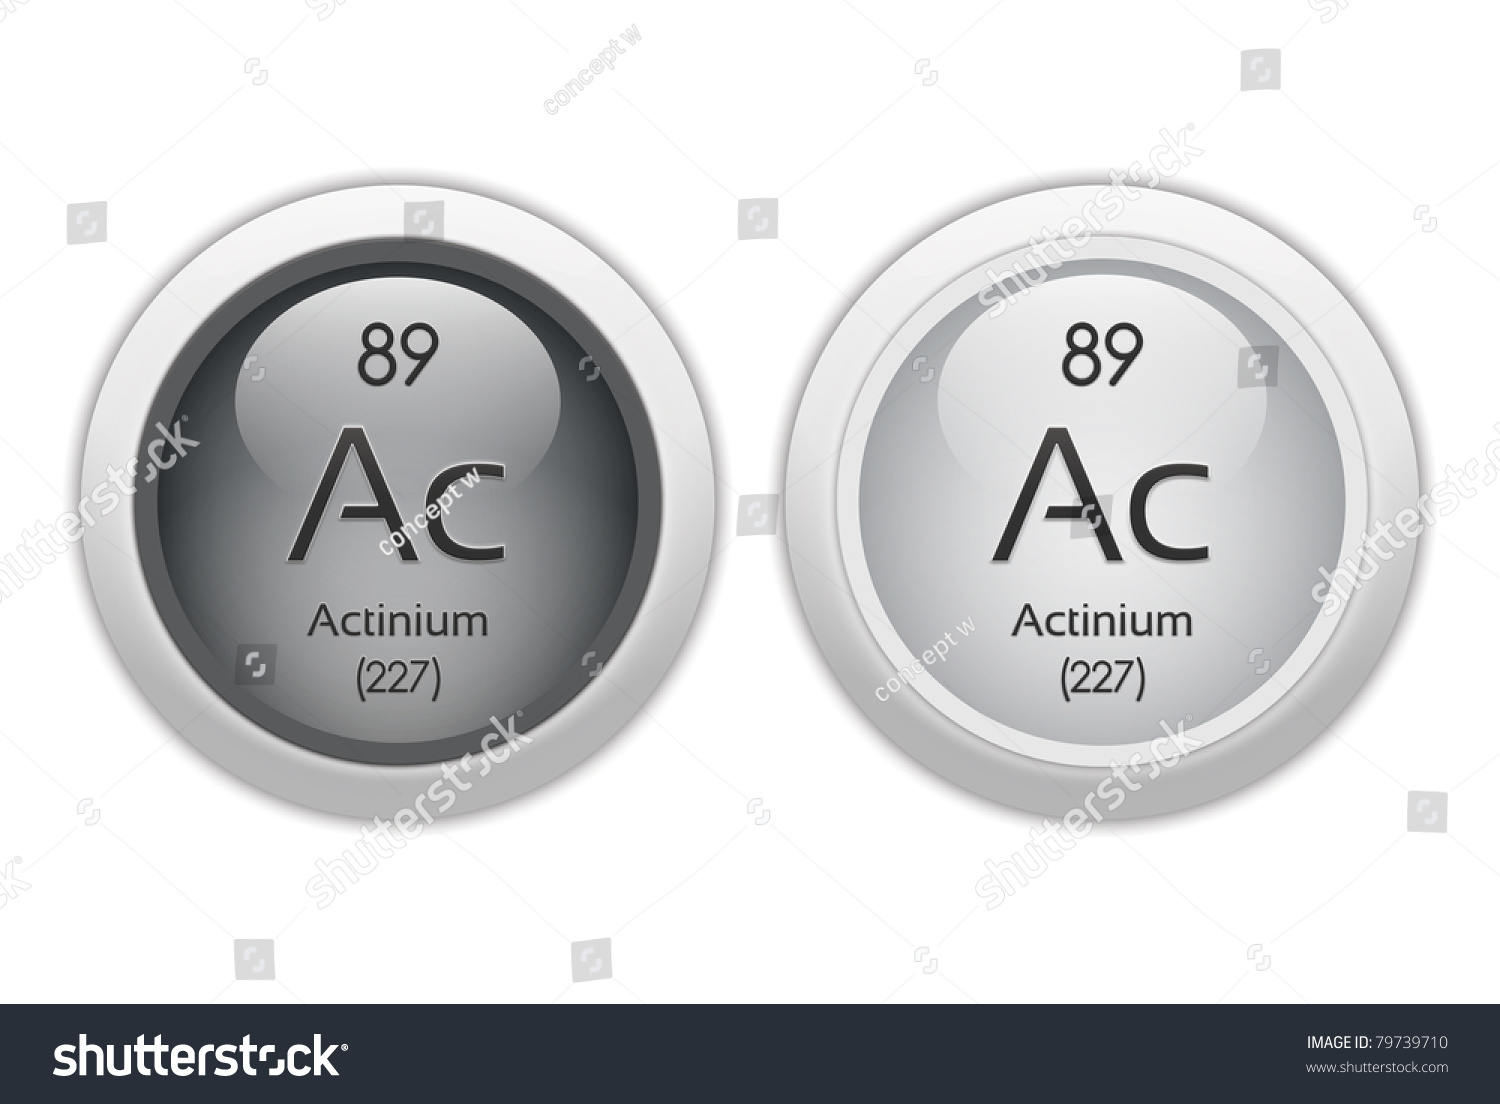 Actinium web buttons chemical element atomic stock illustration actinium web buttons chemical element with atomic number 89 it is represented by biocorpaavc